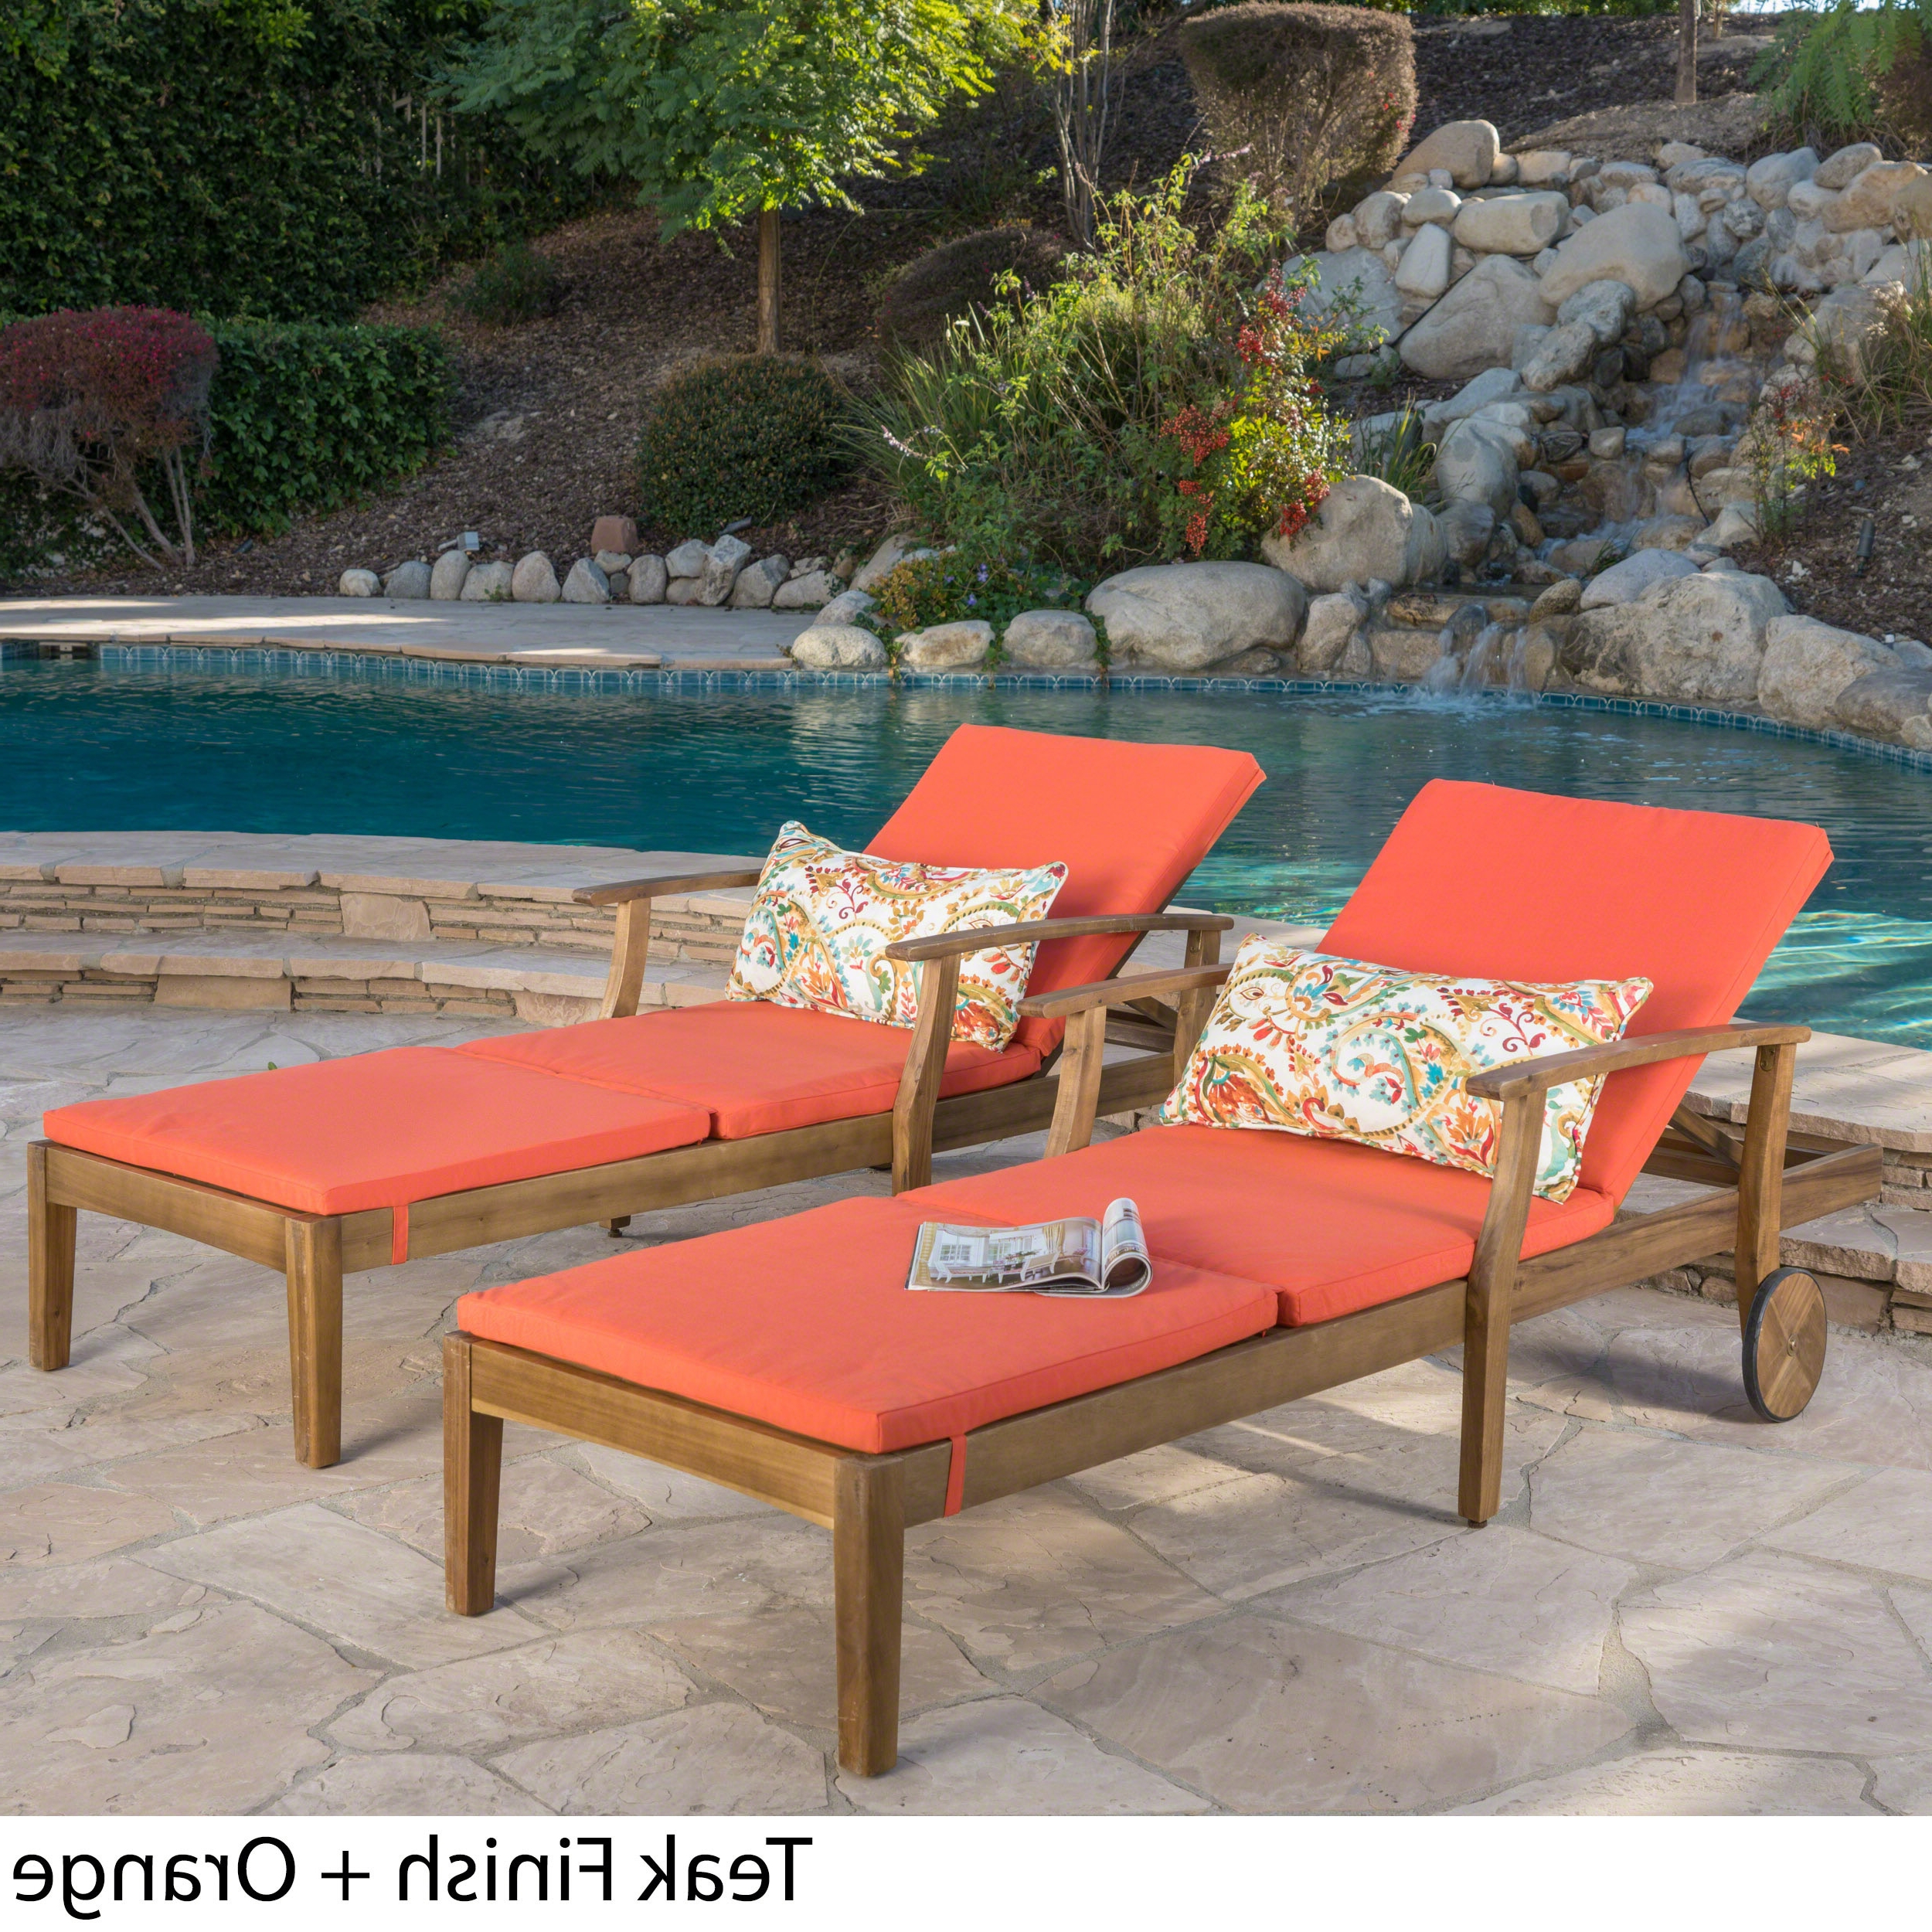 Perla Outdoor Acacia Wood Chaise Lounge With Cushion Pertaining To 2019 Christopher Knight Home Perla Outdoor Acacia Wood Chaise Lounge With Cushion (set Of 2) By (View 4 of 25)